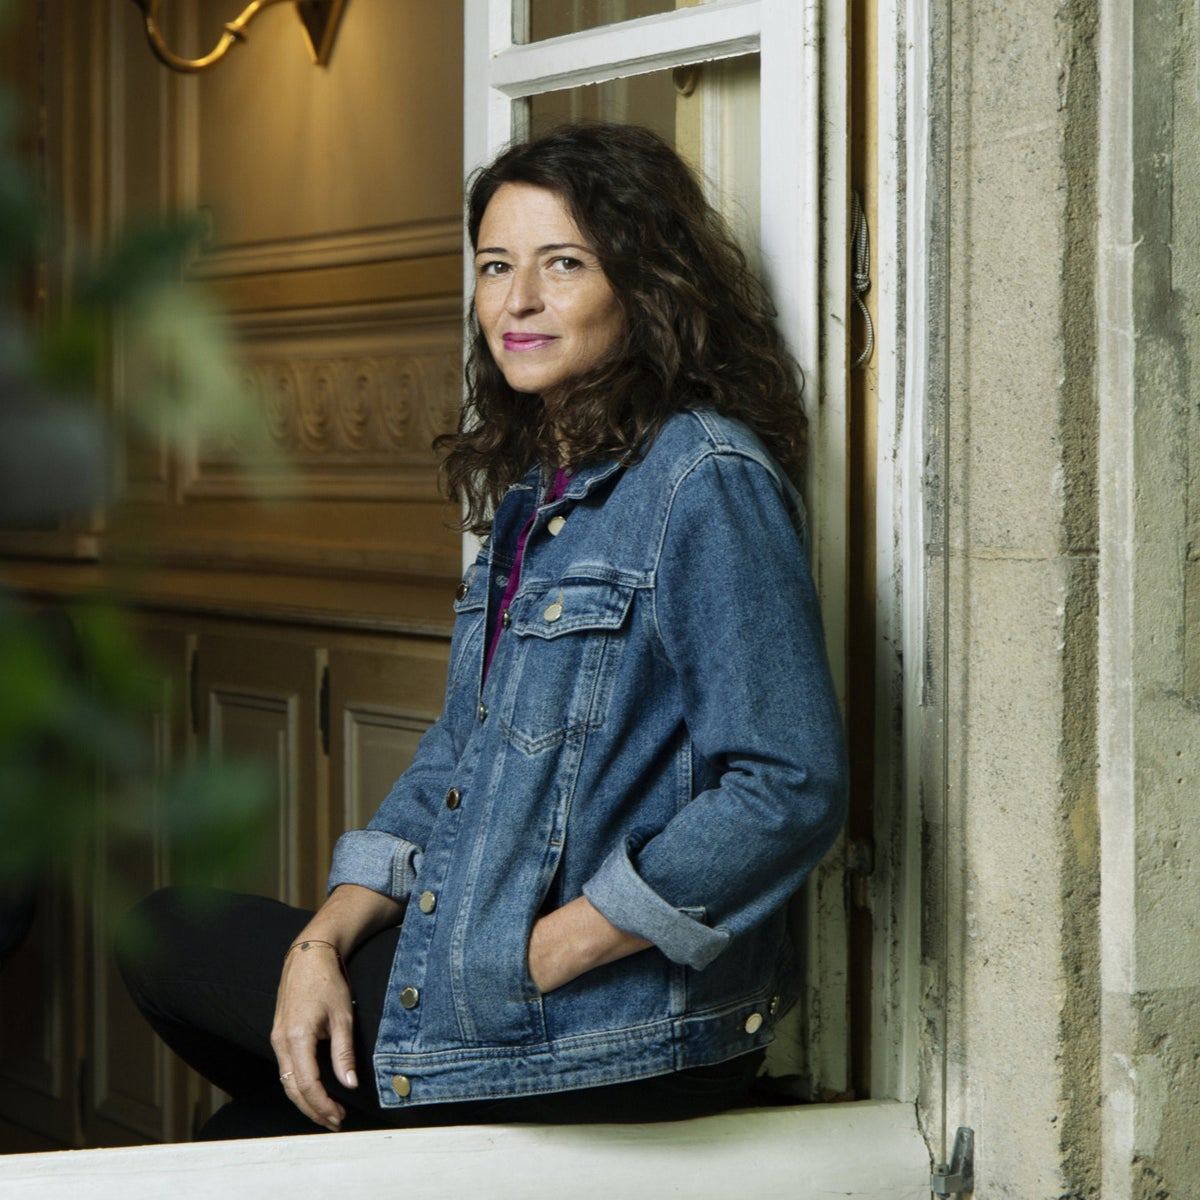 Author Karine Tuil. 'As a child and teen, I tried to hide my femininity.'